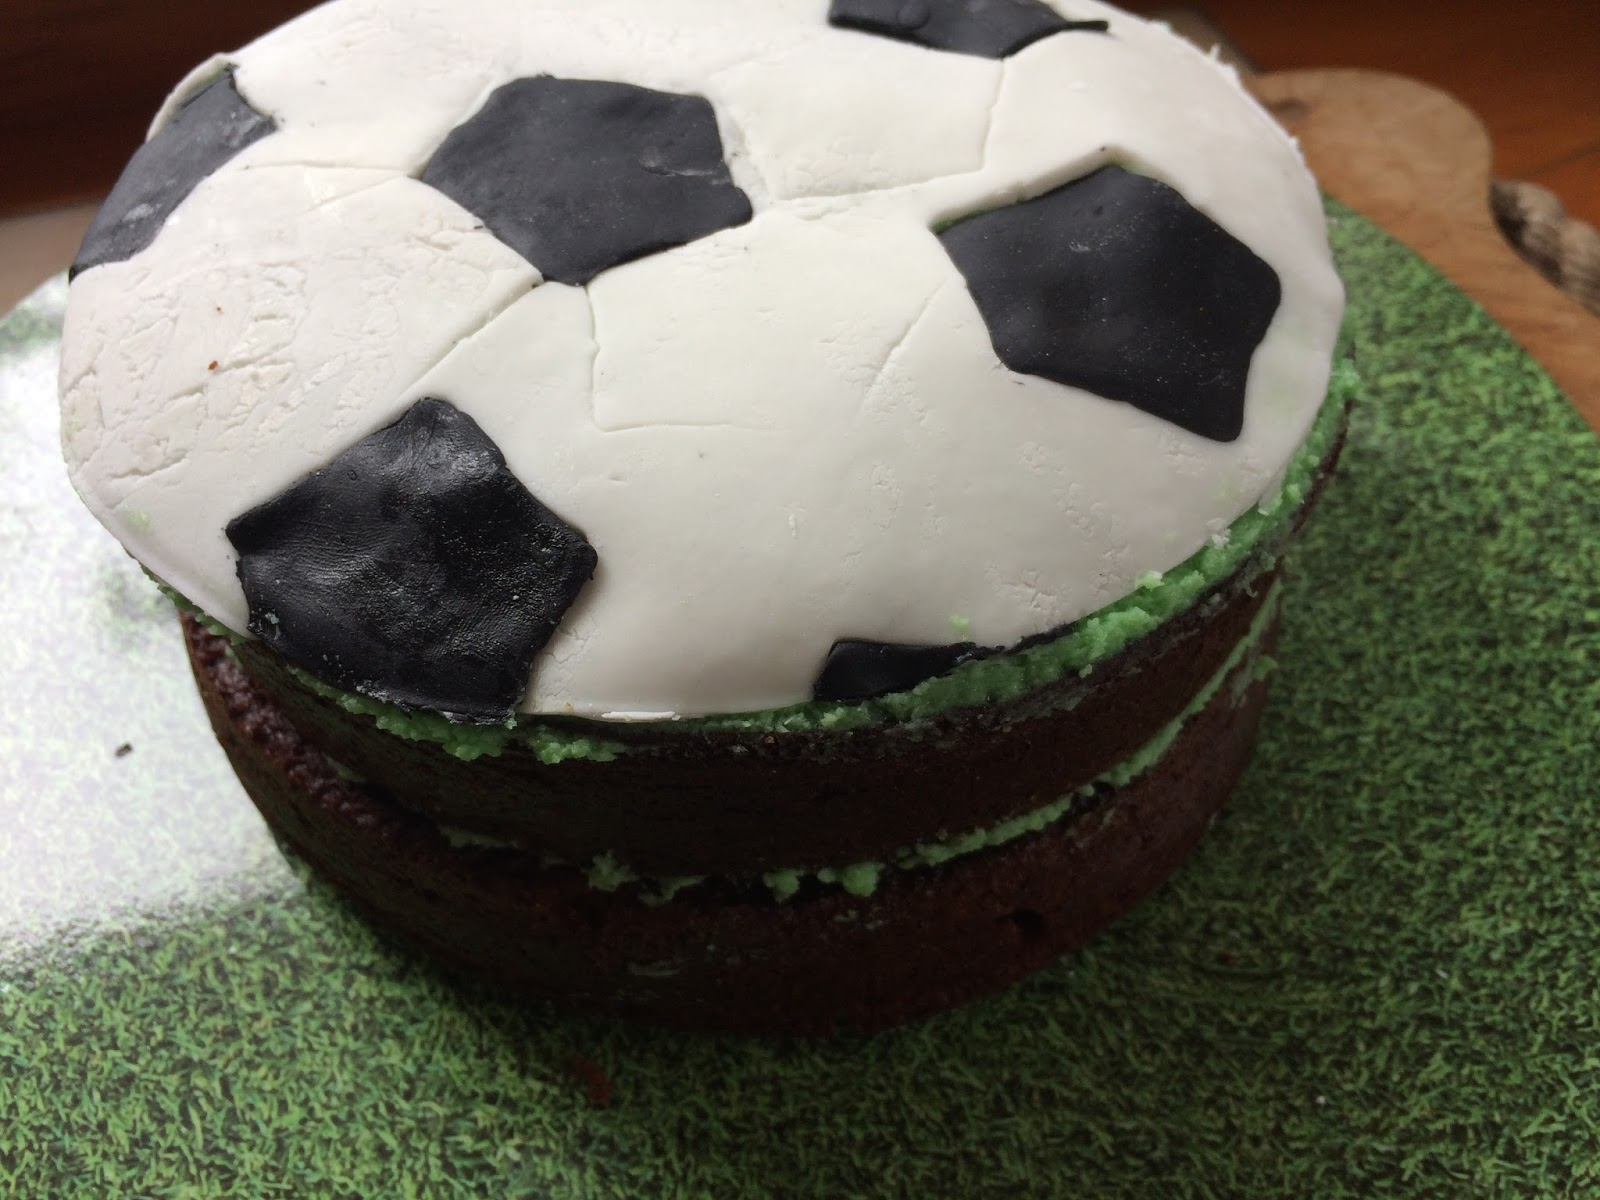 DIY Fondant Soccer Ball Cake Topper - a bit wobblybut made with love and received with joy